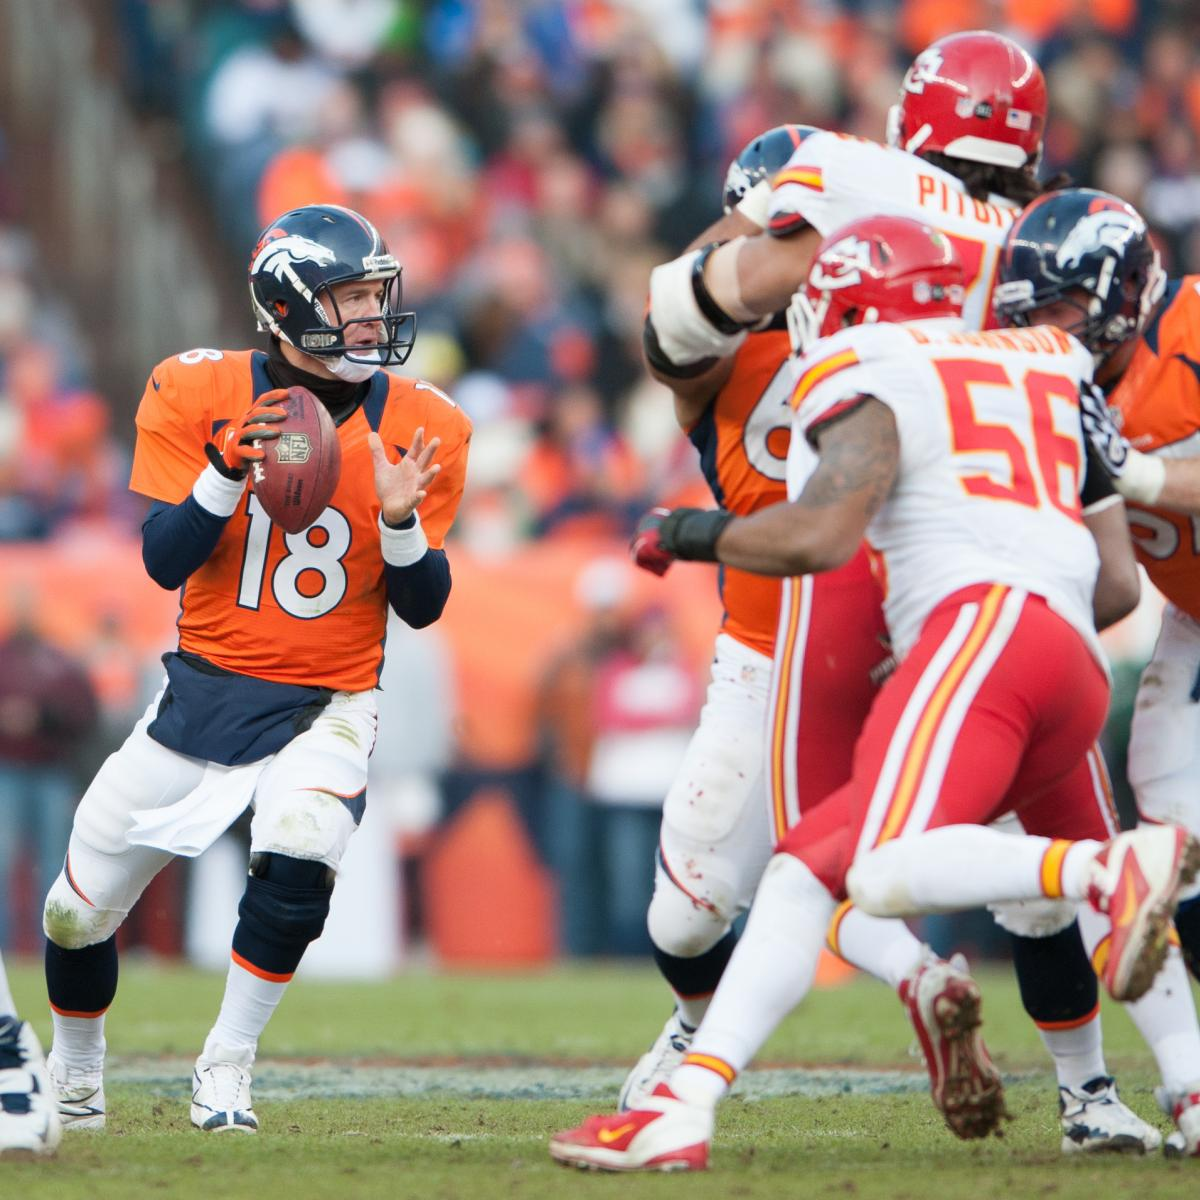 Chiefs Vs. Broncos: Who Has The Edge At Every Position